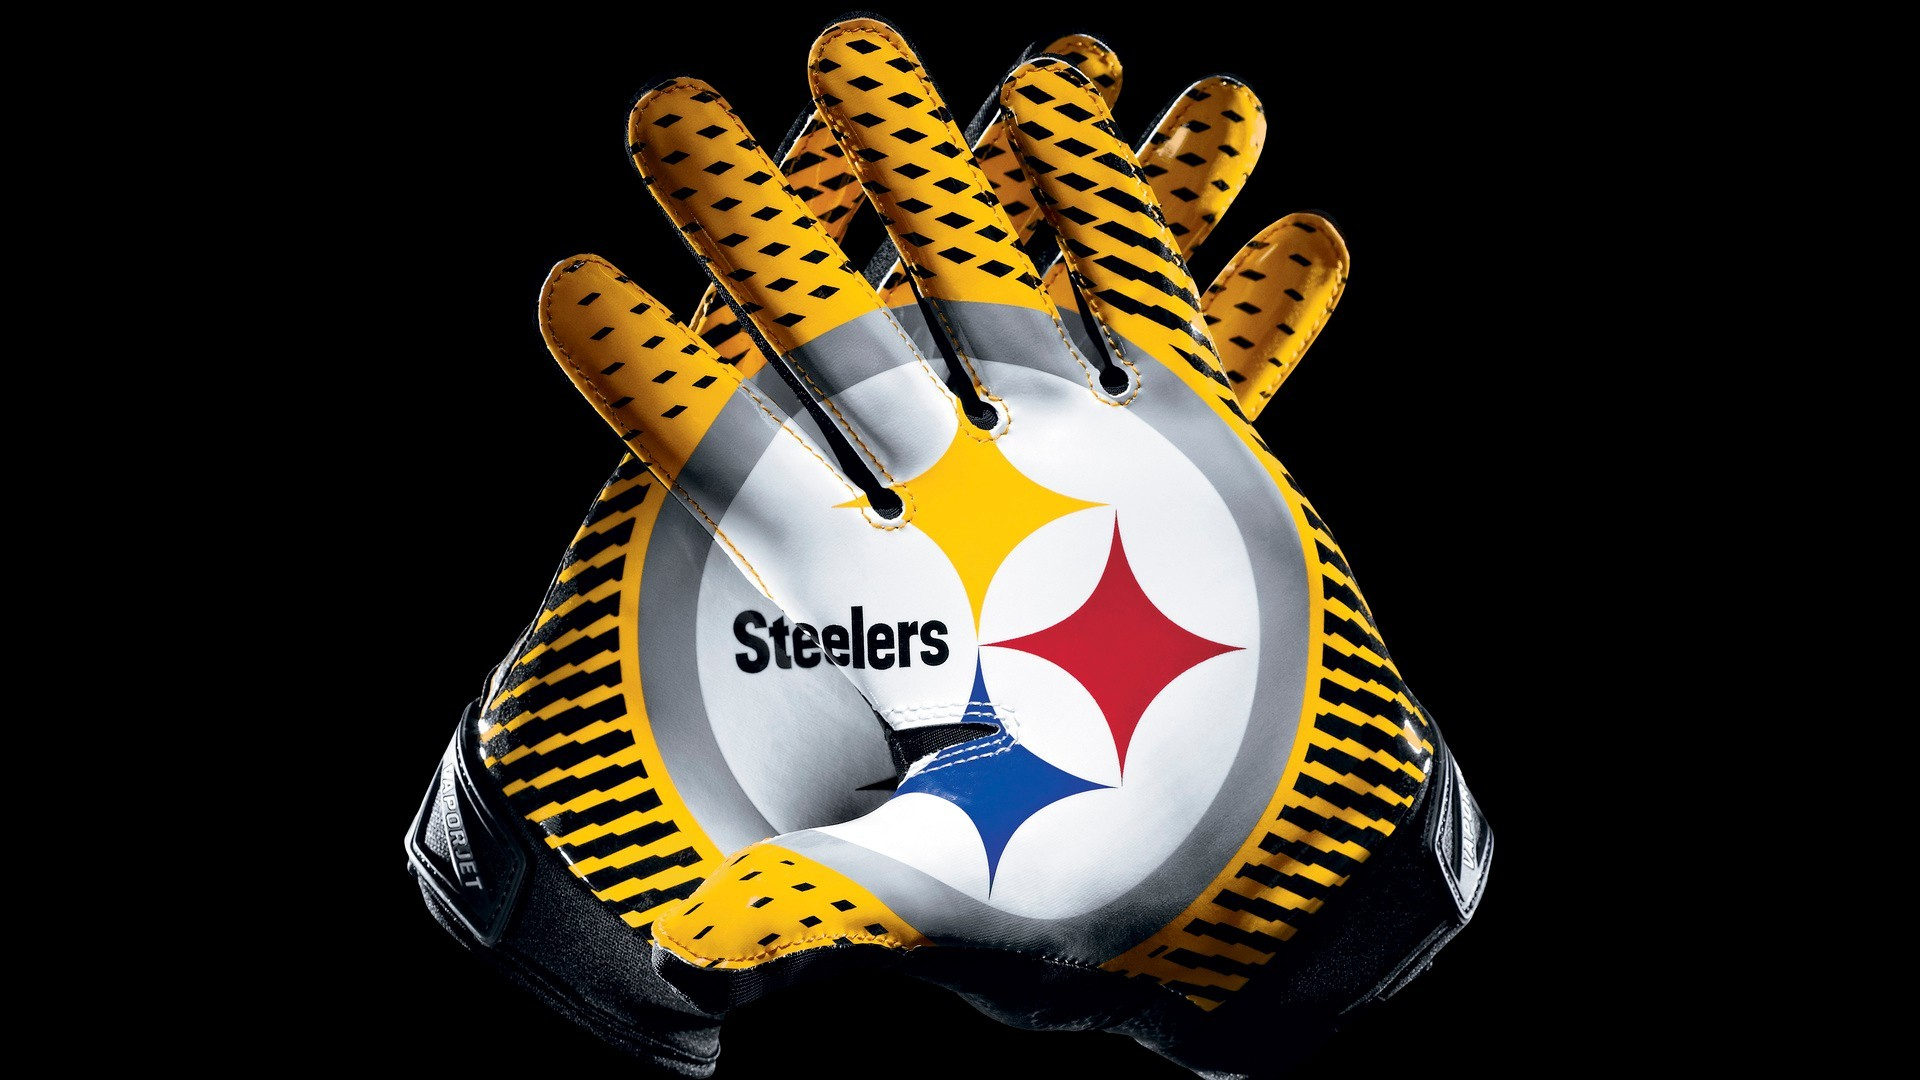 Steelers Wallpaper (68+ images)